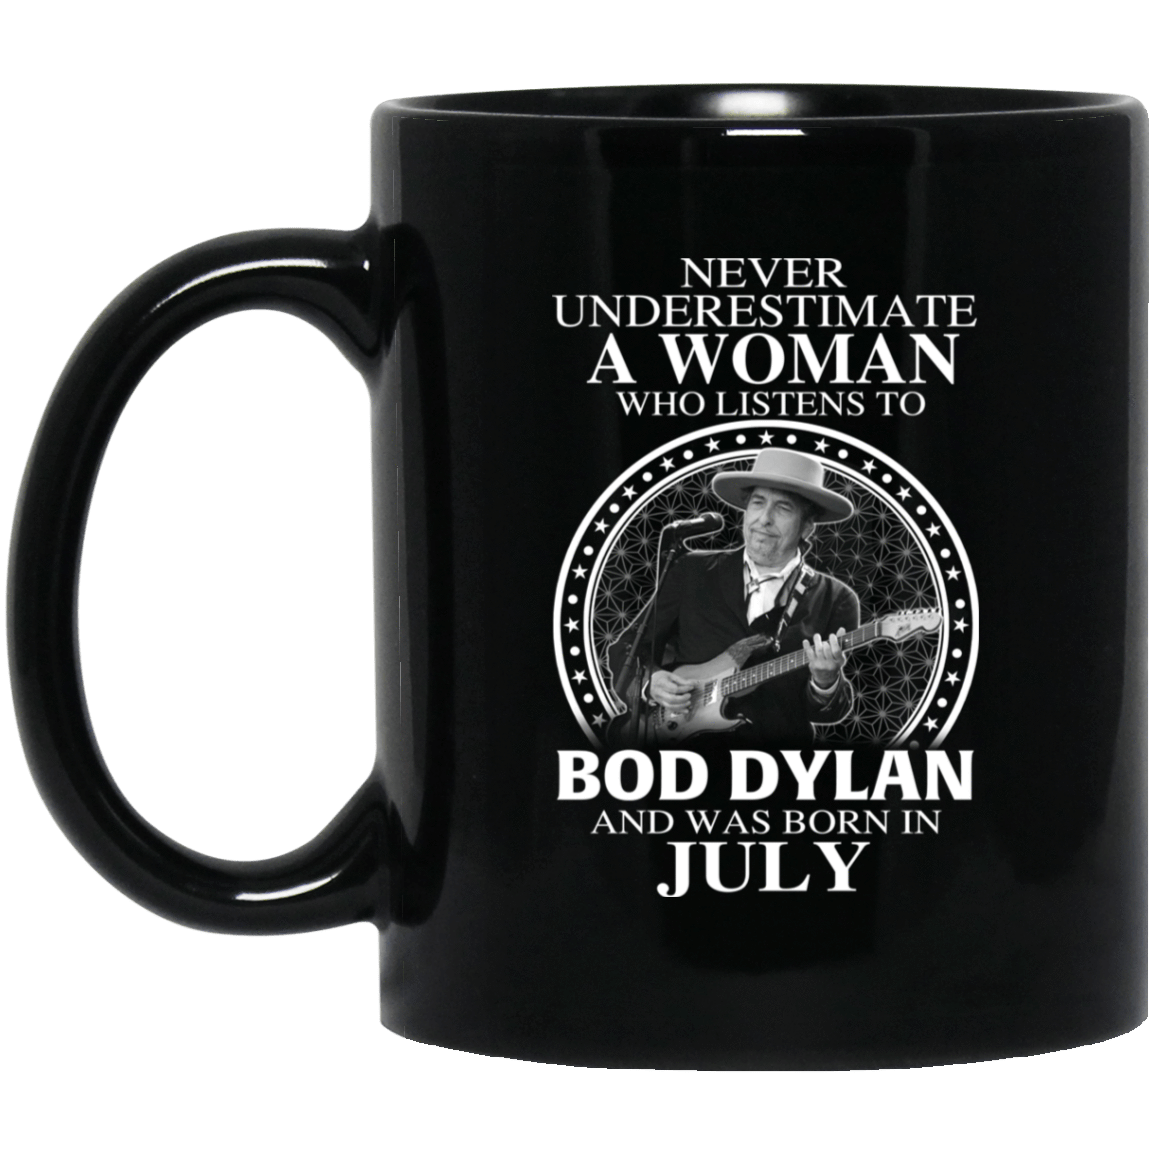 A Woman Who Listens To Bob Dylan And Was Born In July Mug 1065-10181-76154523-49307 - Tee Ript